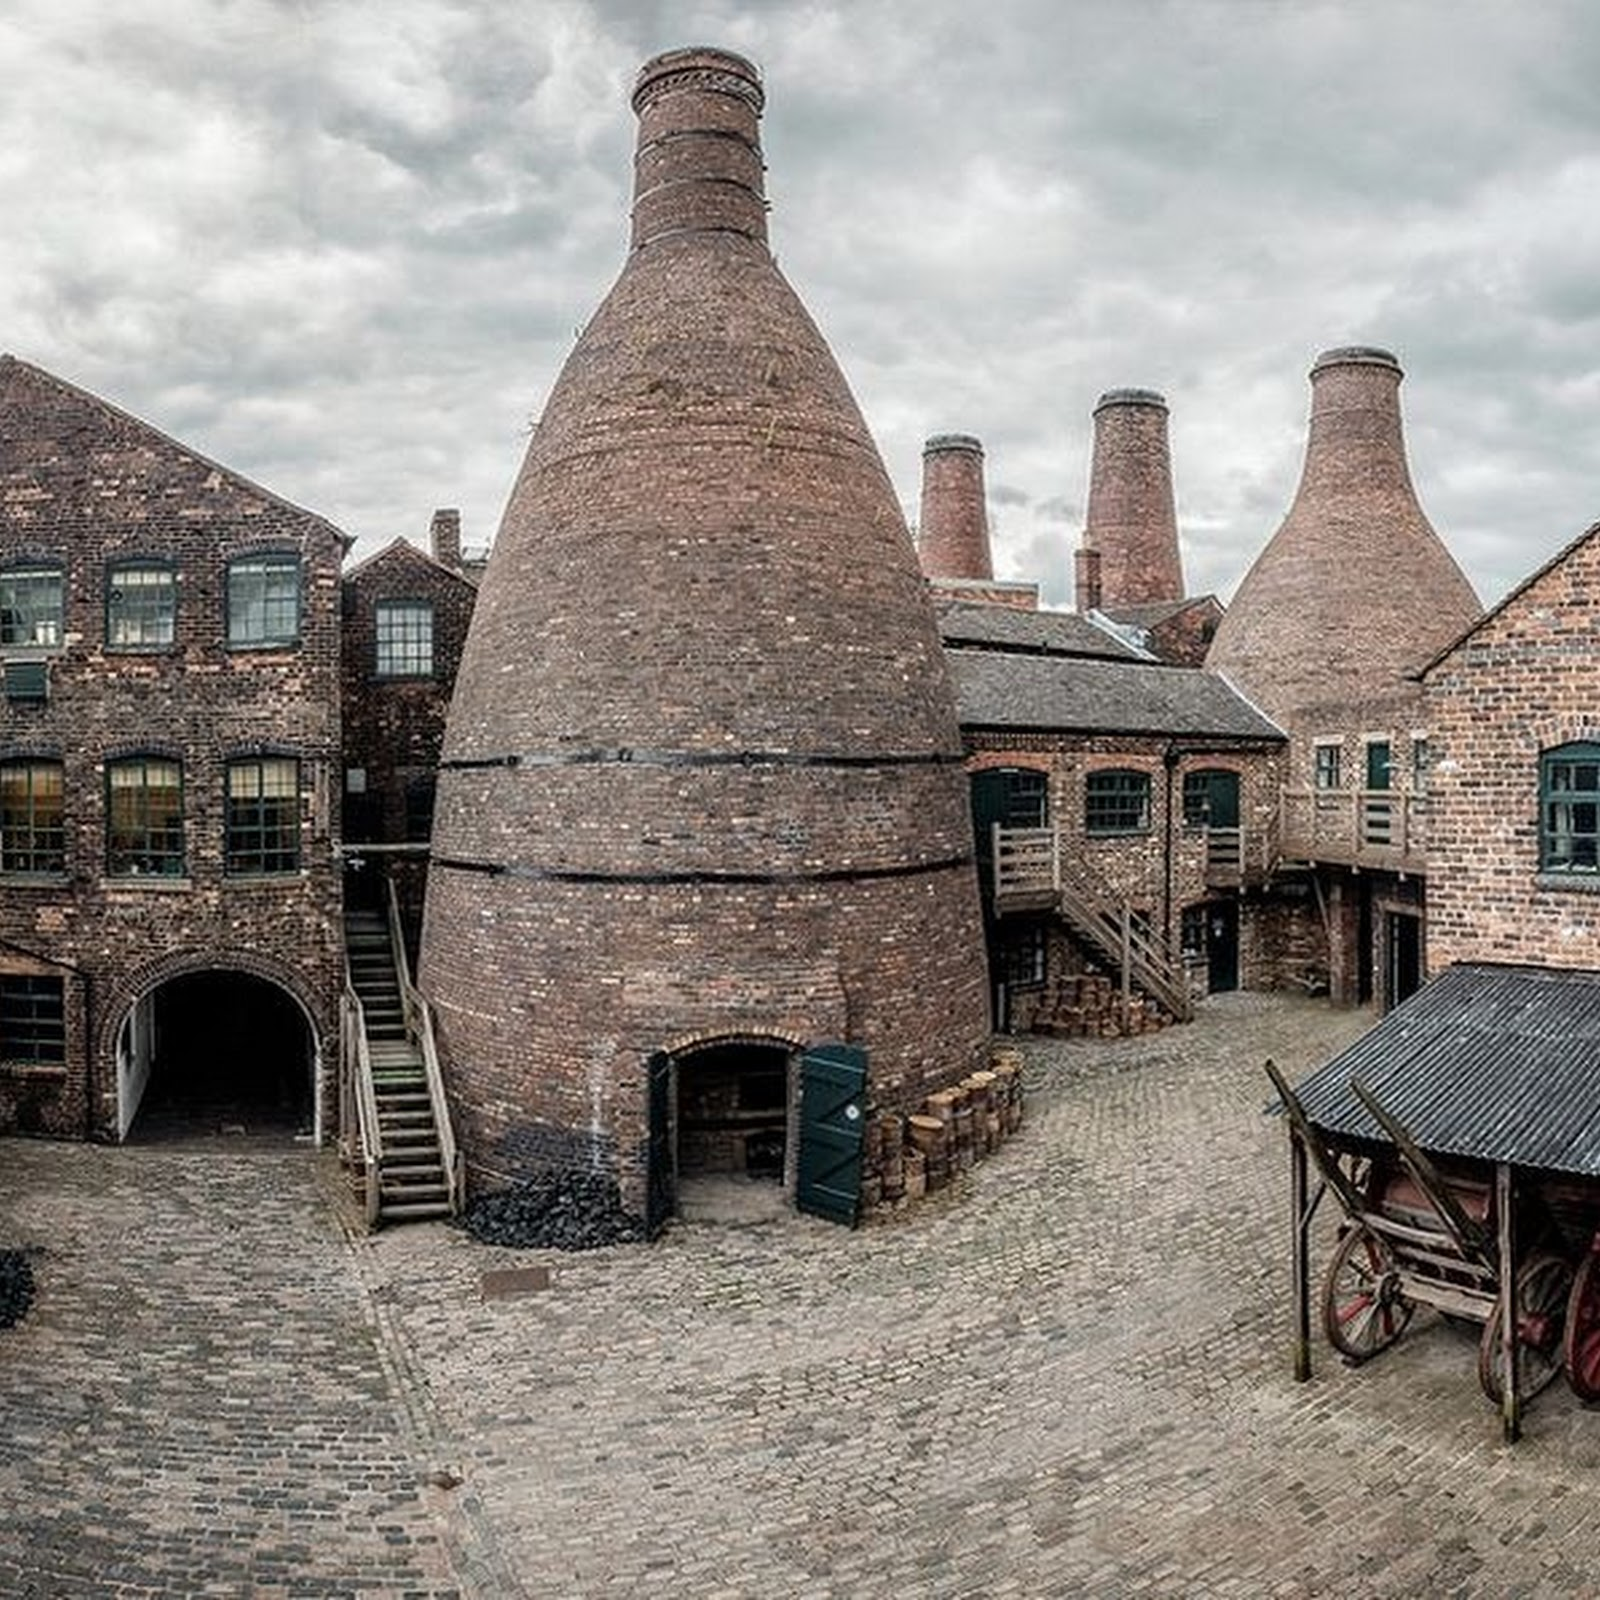 The Potteries of Staffordshire